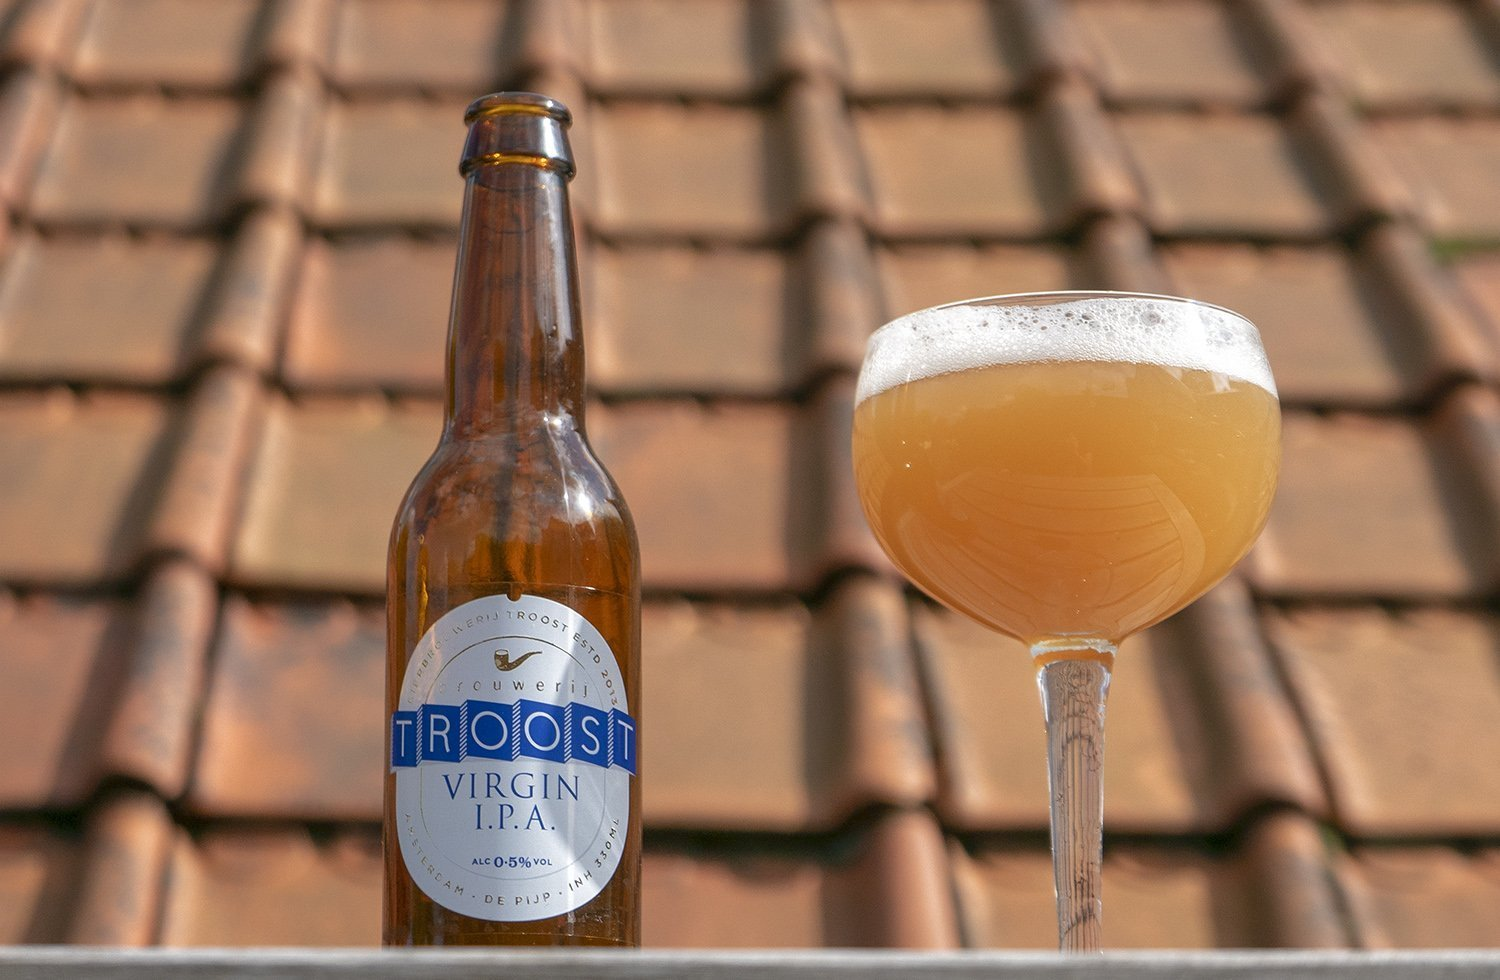 Troost Virgin IPA